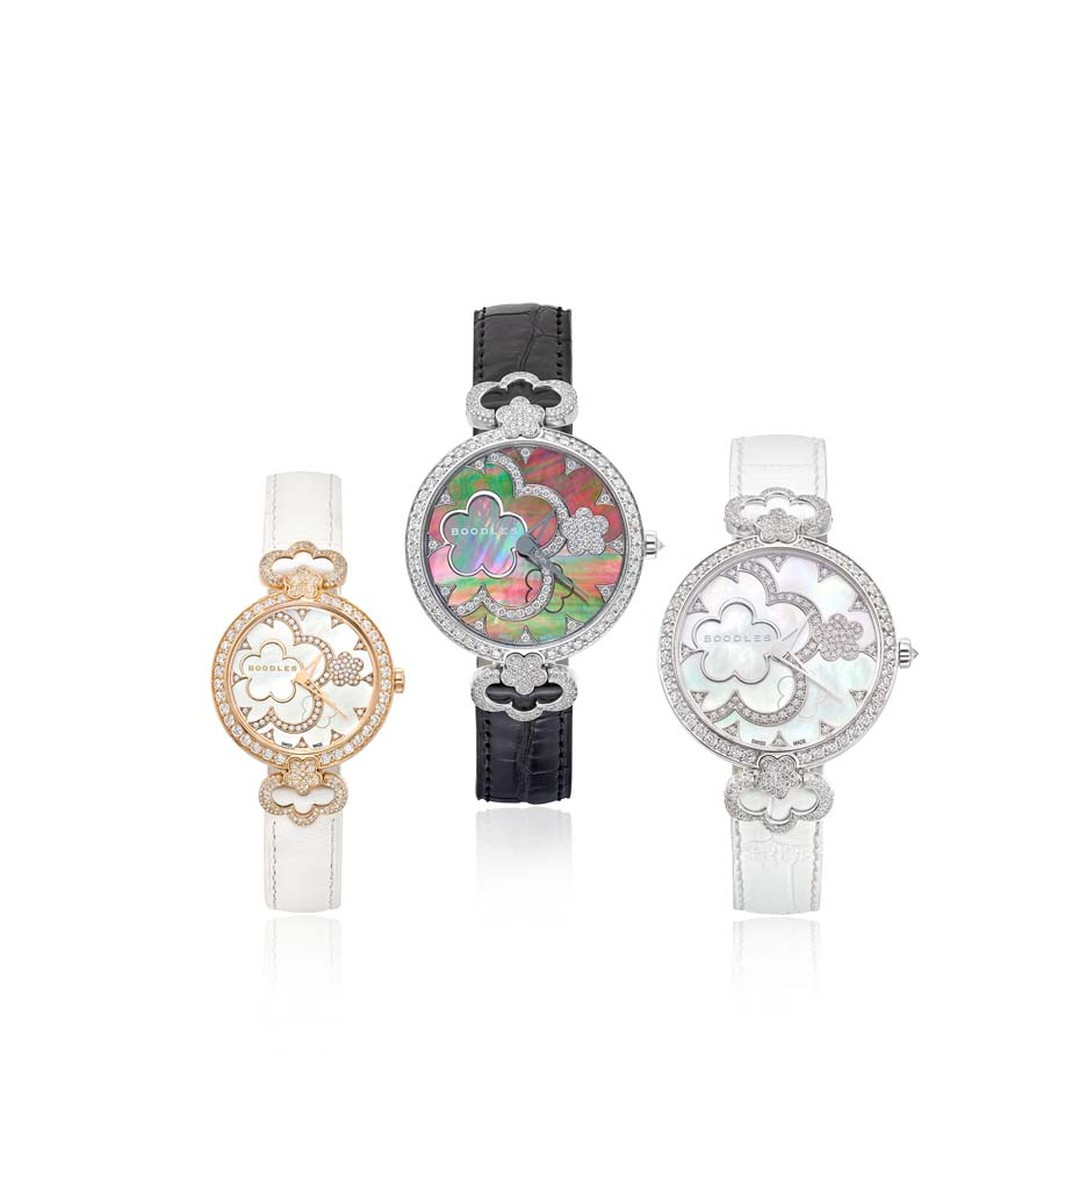 Boodles Blossom watches come in either s 37mm full-set diamond watch with 403 diamonds totalling almost 3ct and a smaller 28mm watch with 350 diamonds totalling almost 2ct.